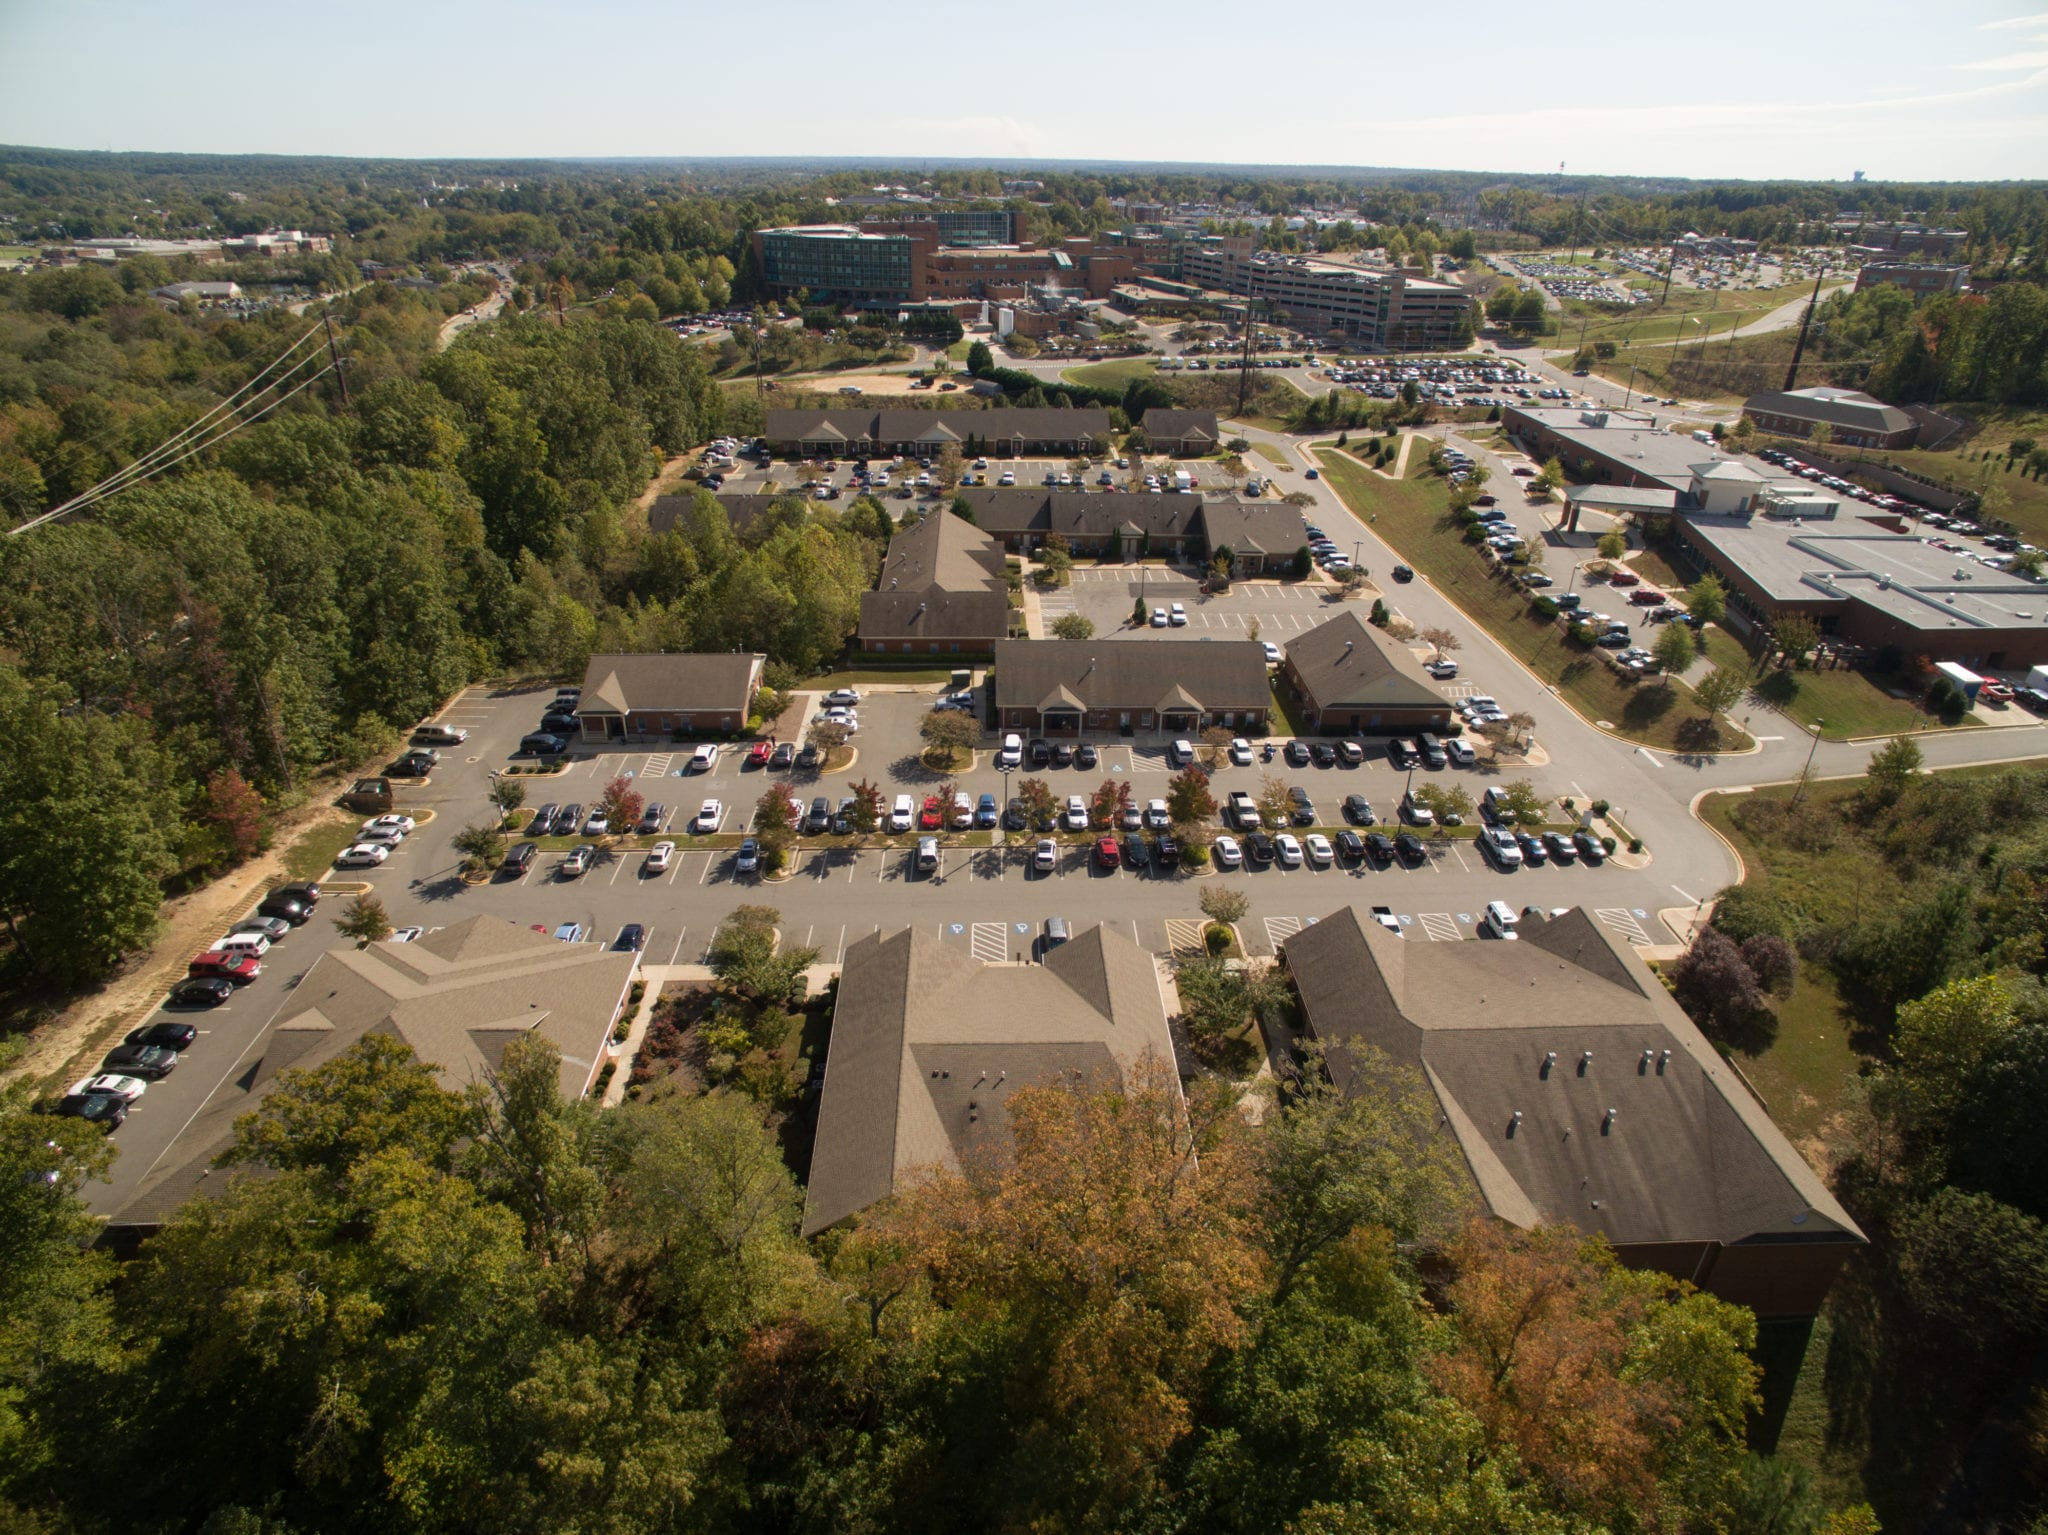 Edge Brokers Sale Of 22,400 SF Fully-Leased Six-Building Medical Office Portfolio In Fredericksburg, VA For $5.5M